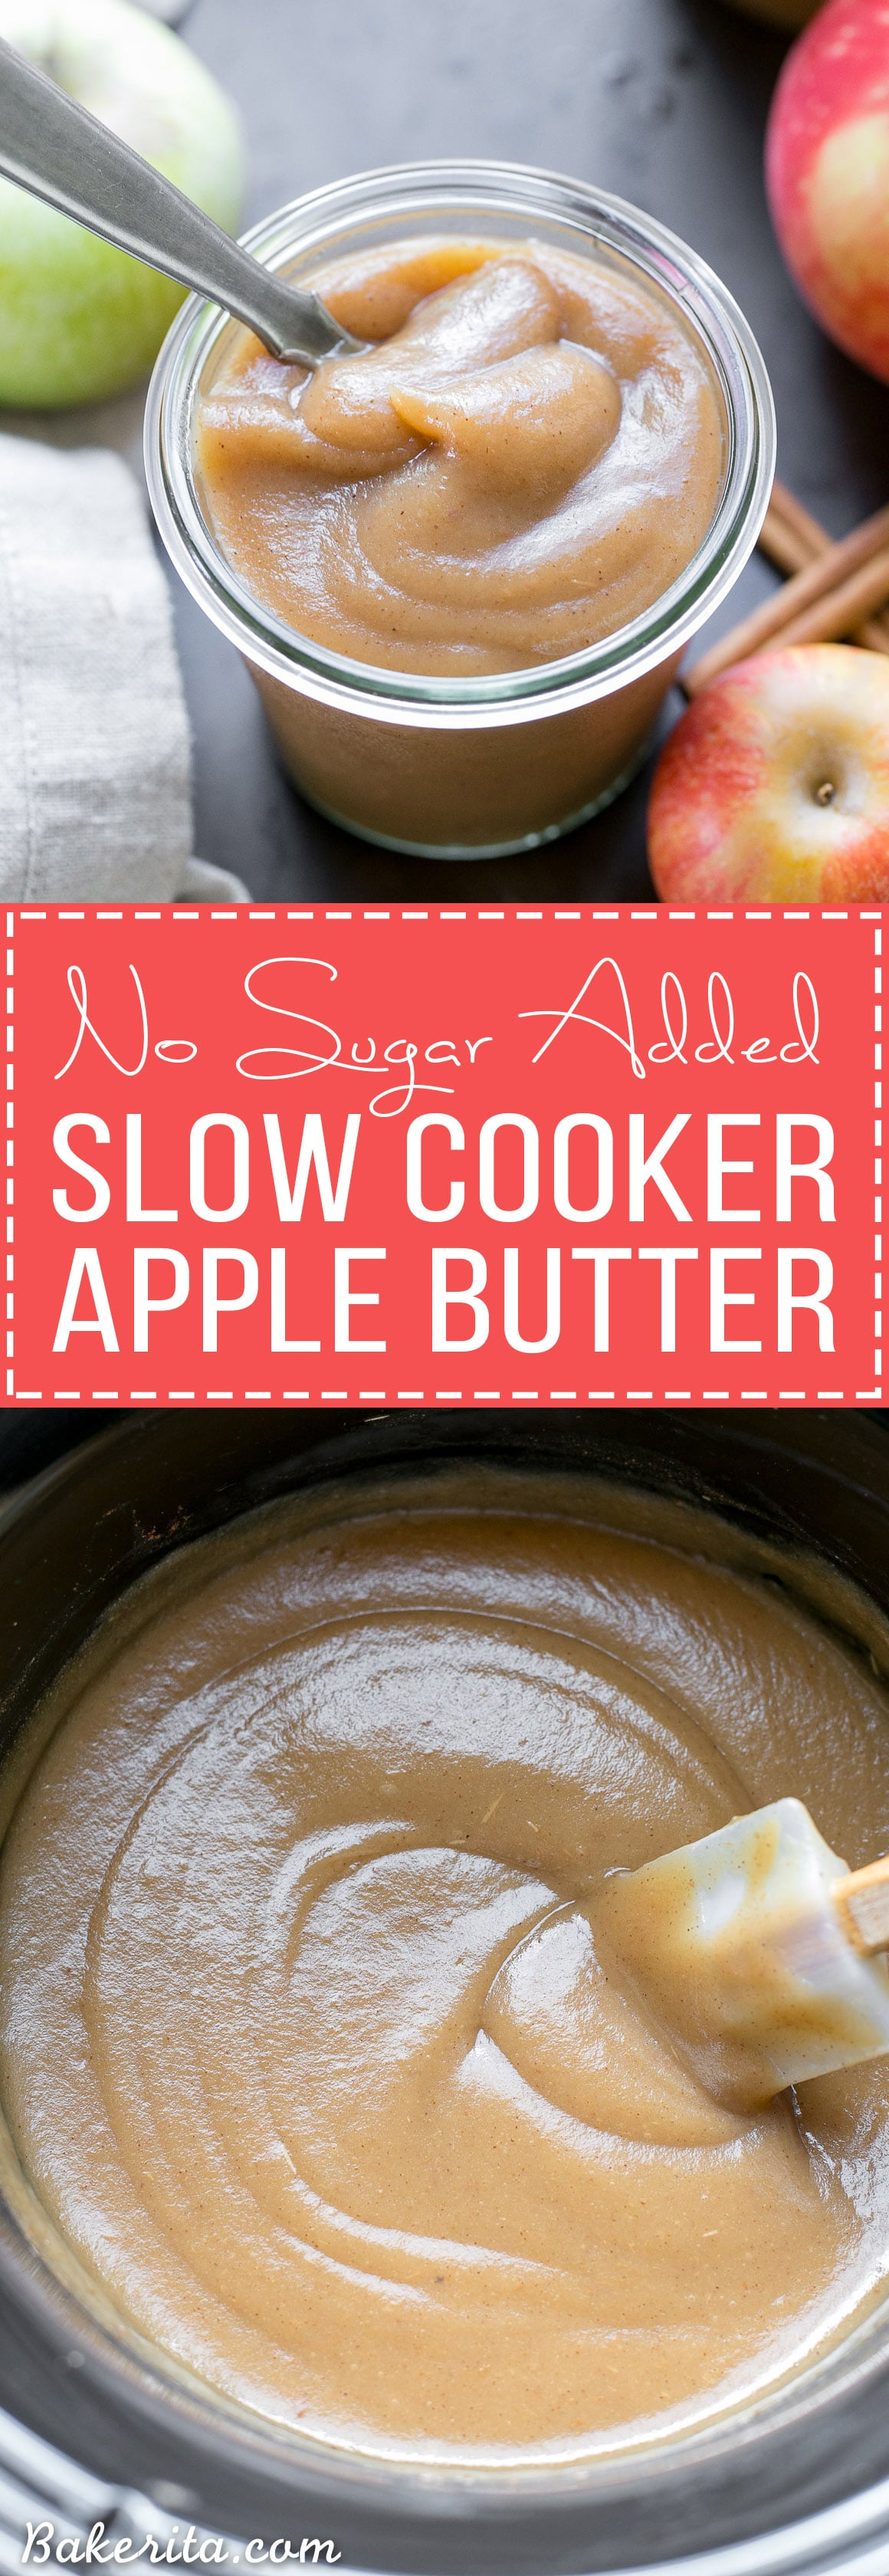 Slow Cooker Apple Butter (No Sugar Added) - Bakerita